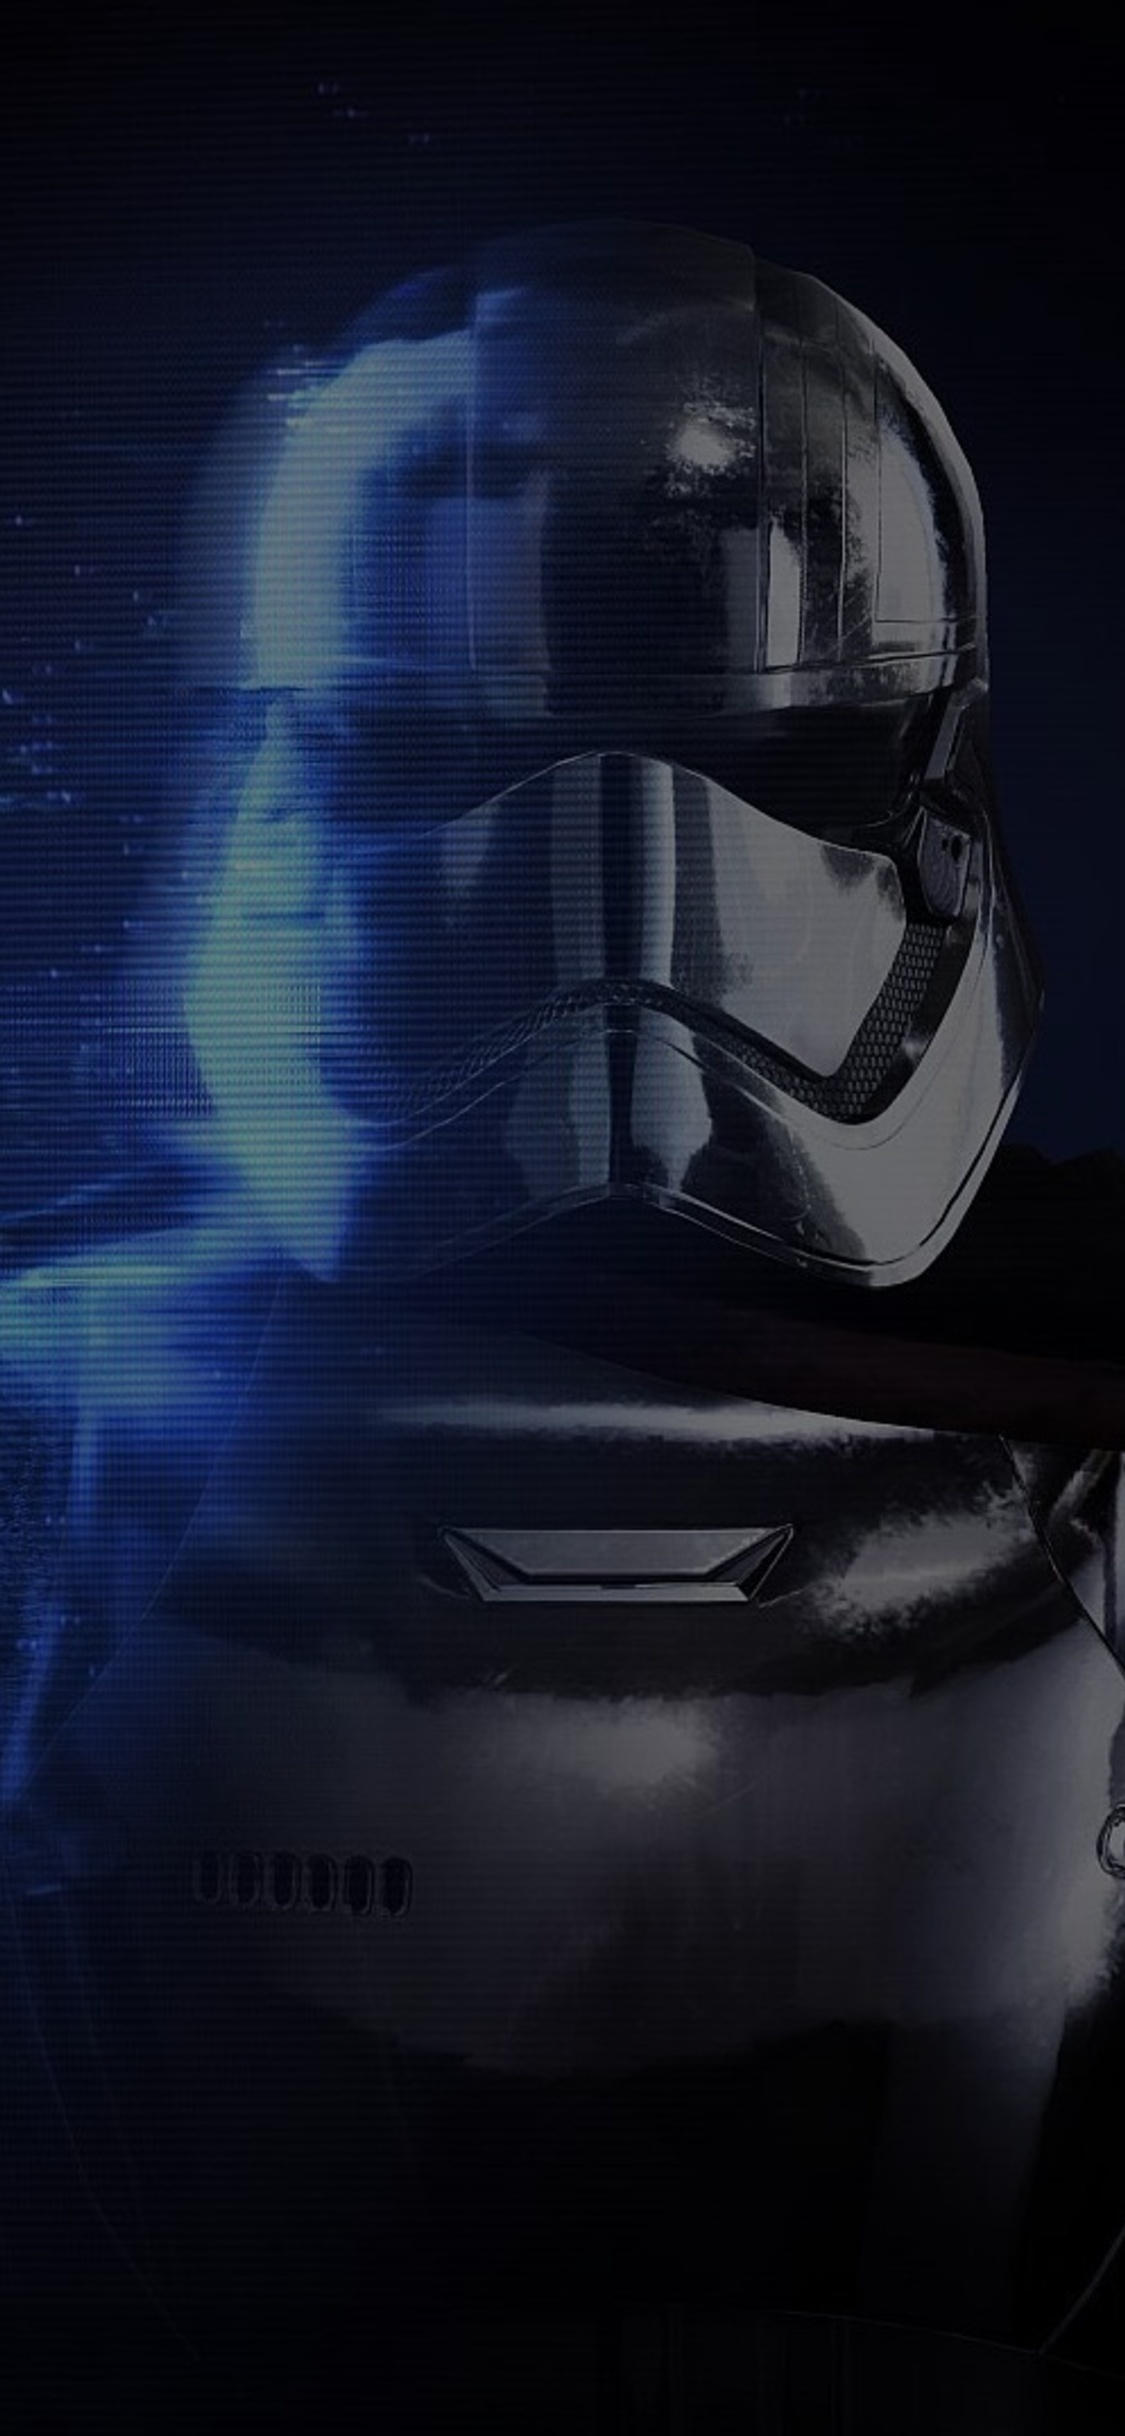 1125x2436 Star Wars Battlefront Ii The Last Jedi Iphone Xs Iphone 10